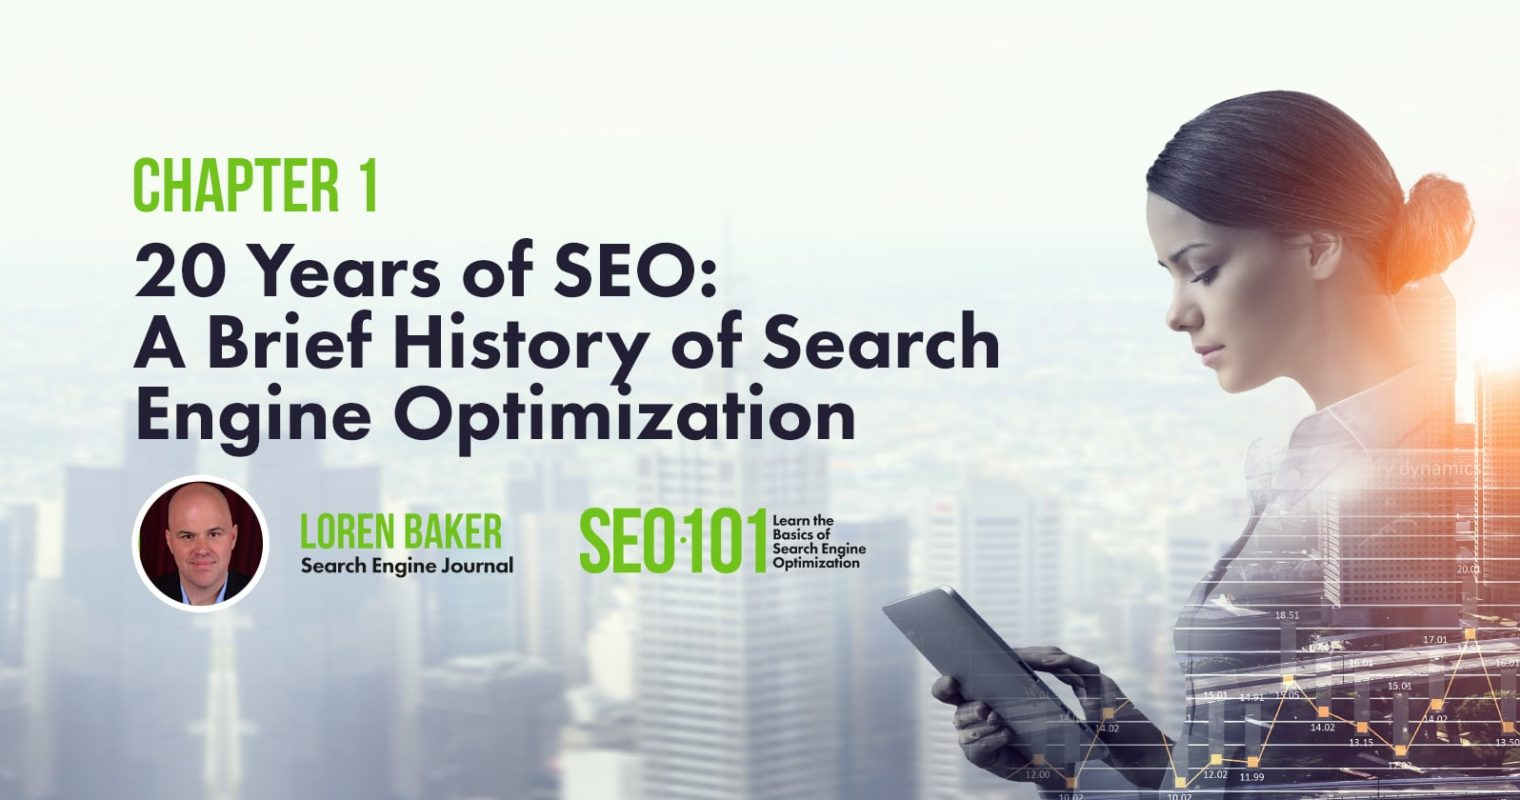 20 Years of SEO: A Brief History of Search Engine Optimization